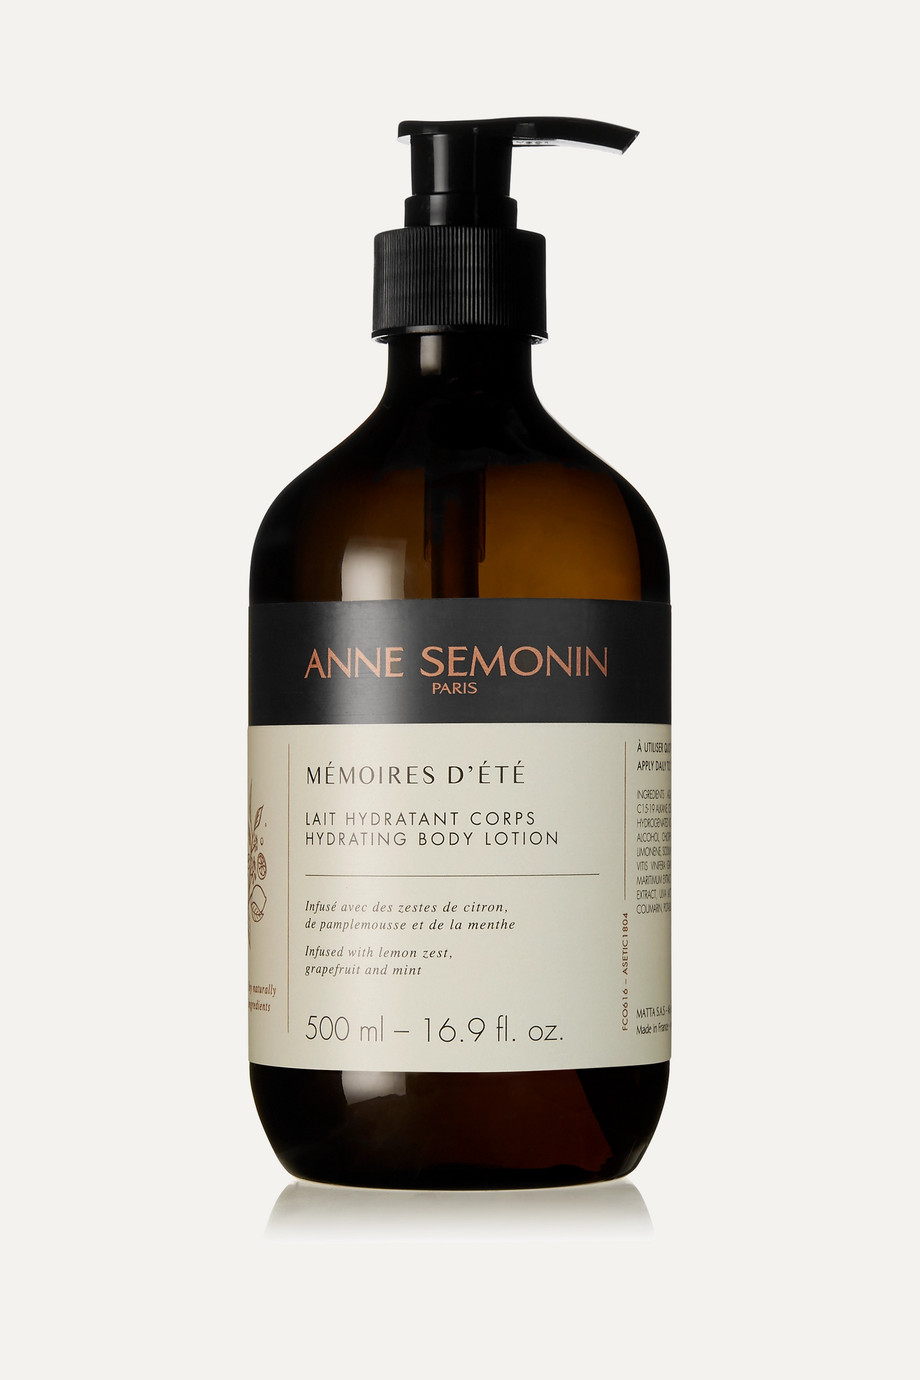 Anne Semonin Mémoires d'Eté Hydrating Body Lotion, 500ml